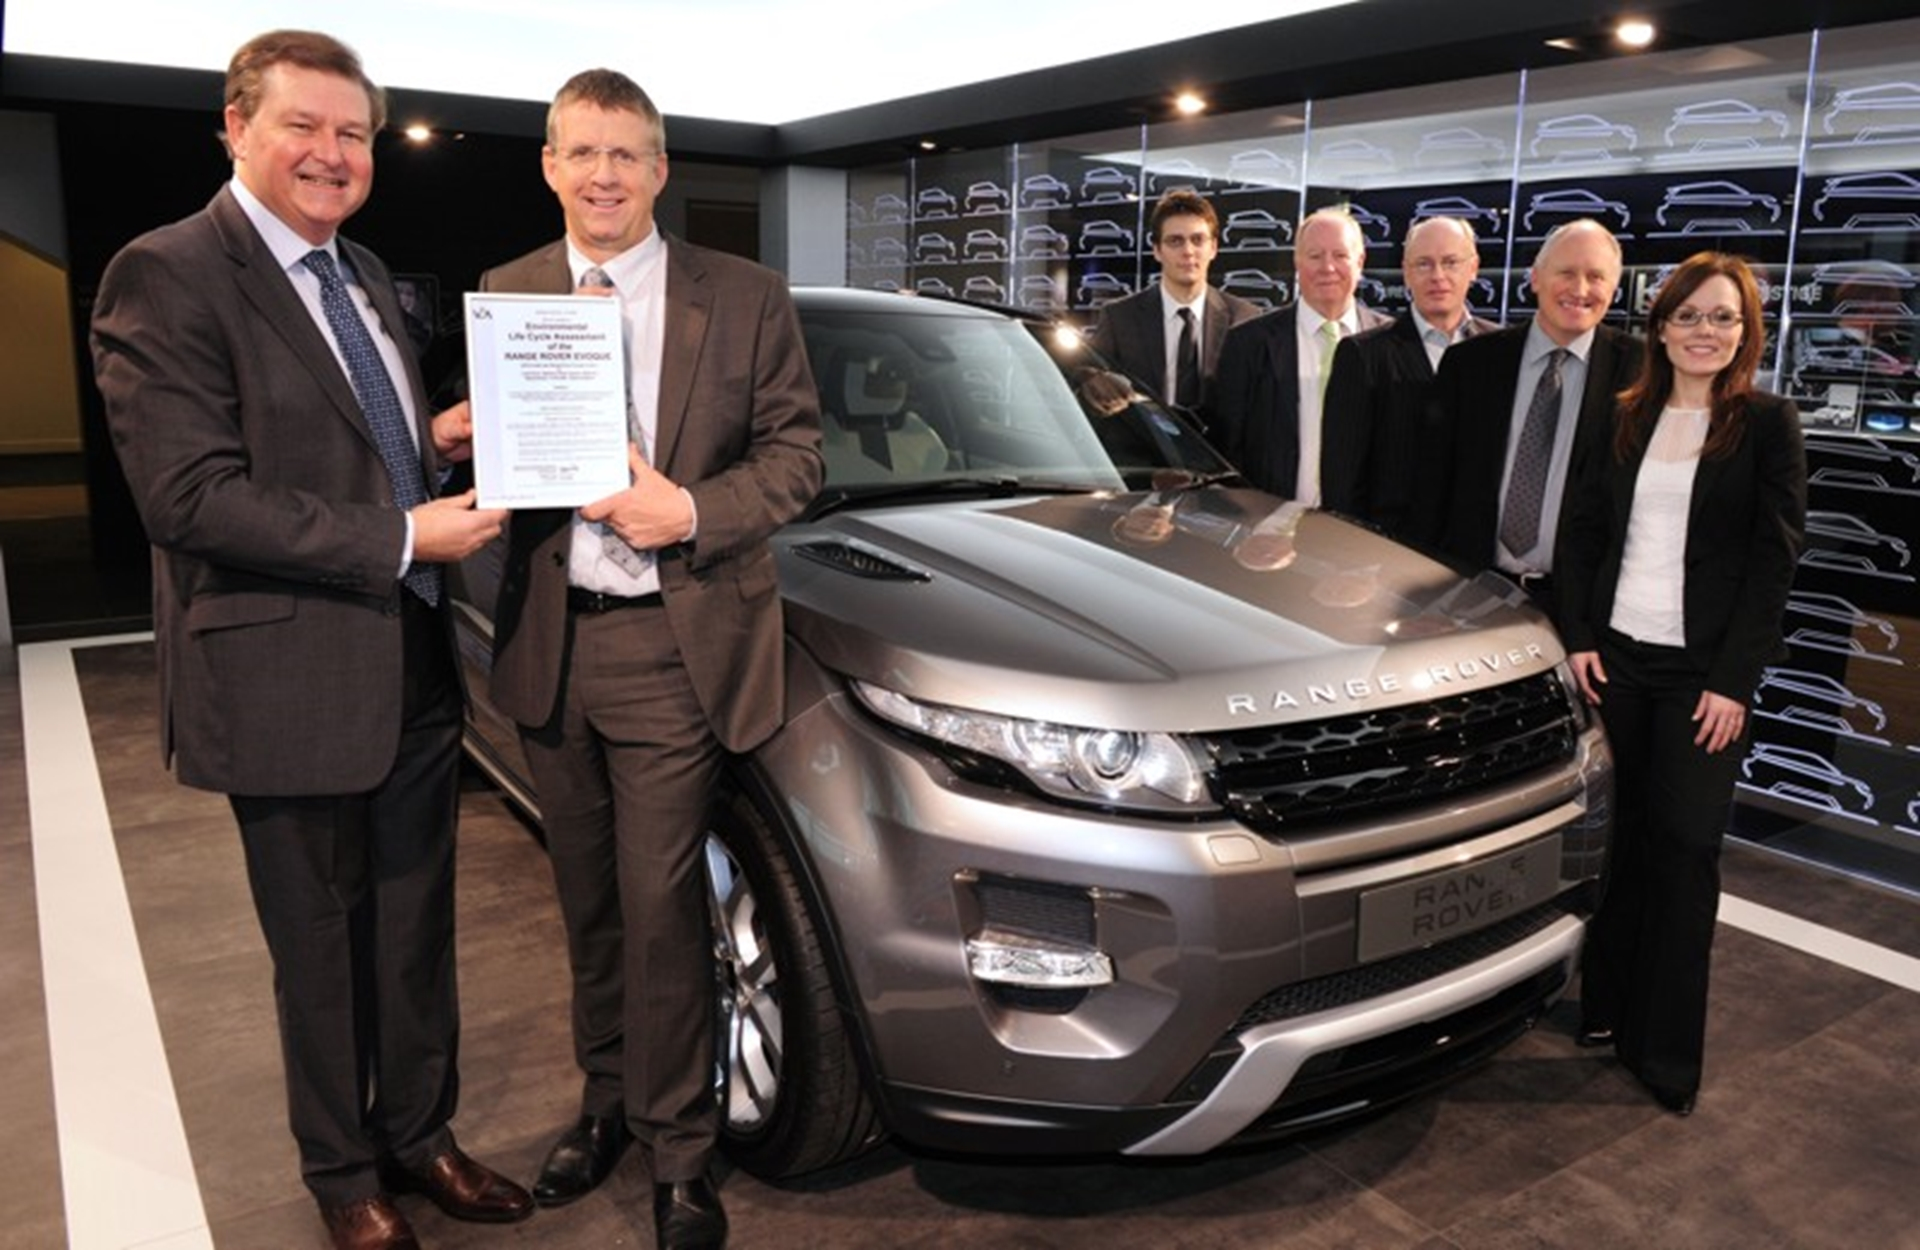 Range Rover Evoque Receives VCA Certification